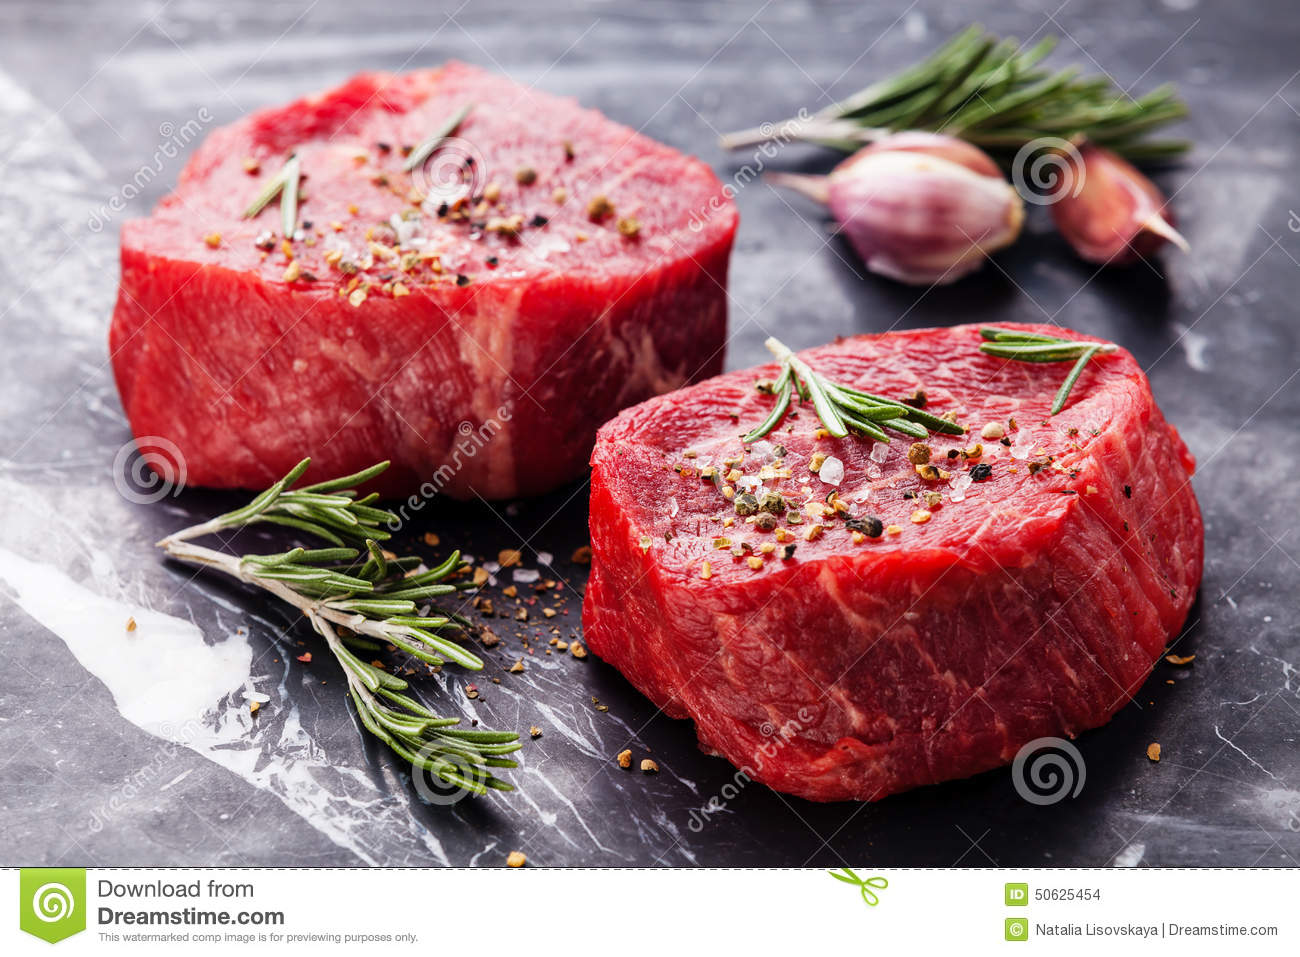 Raw fresh marbled meat Steak